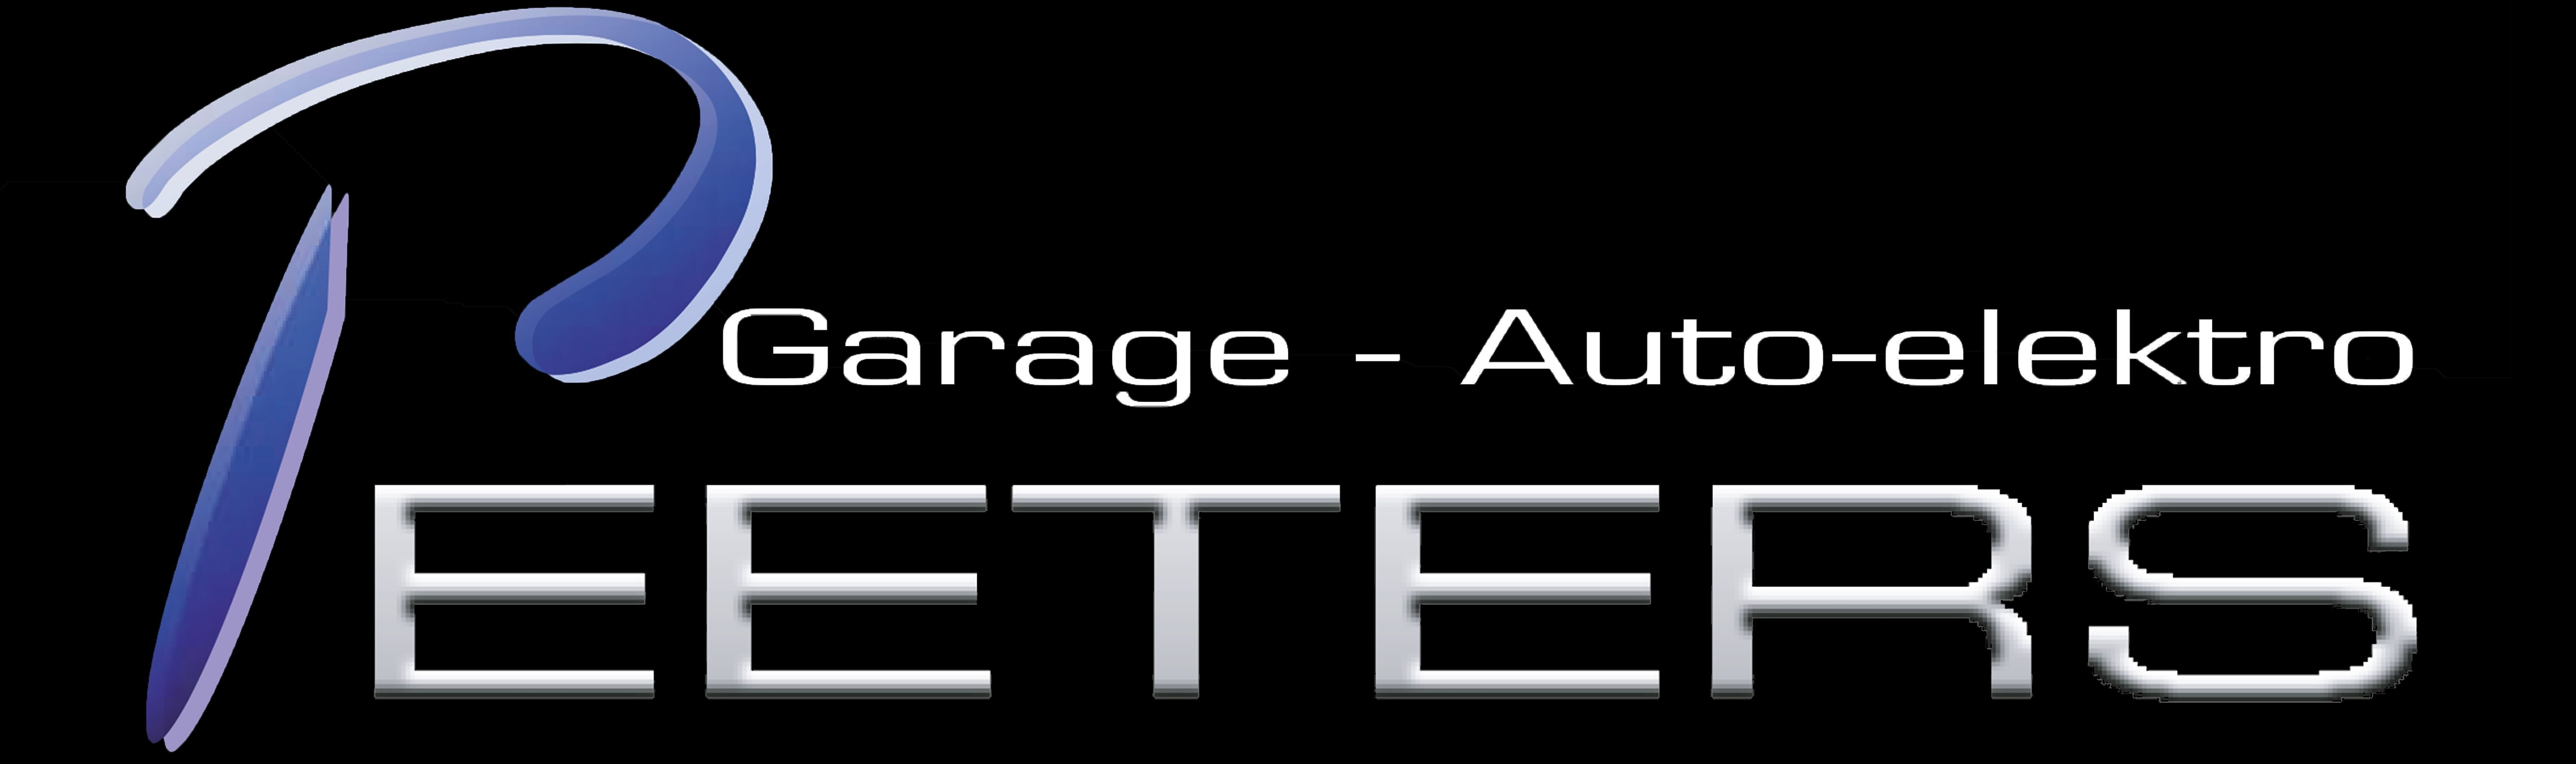 Garage-Autoelectro Peeters